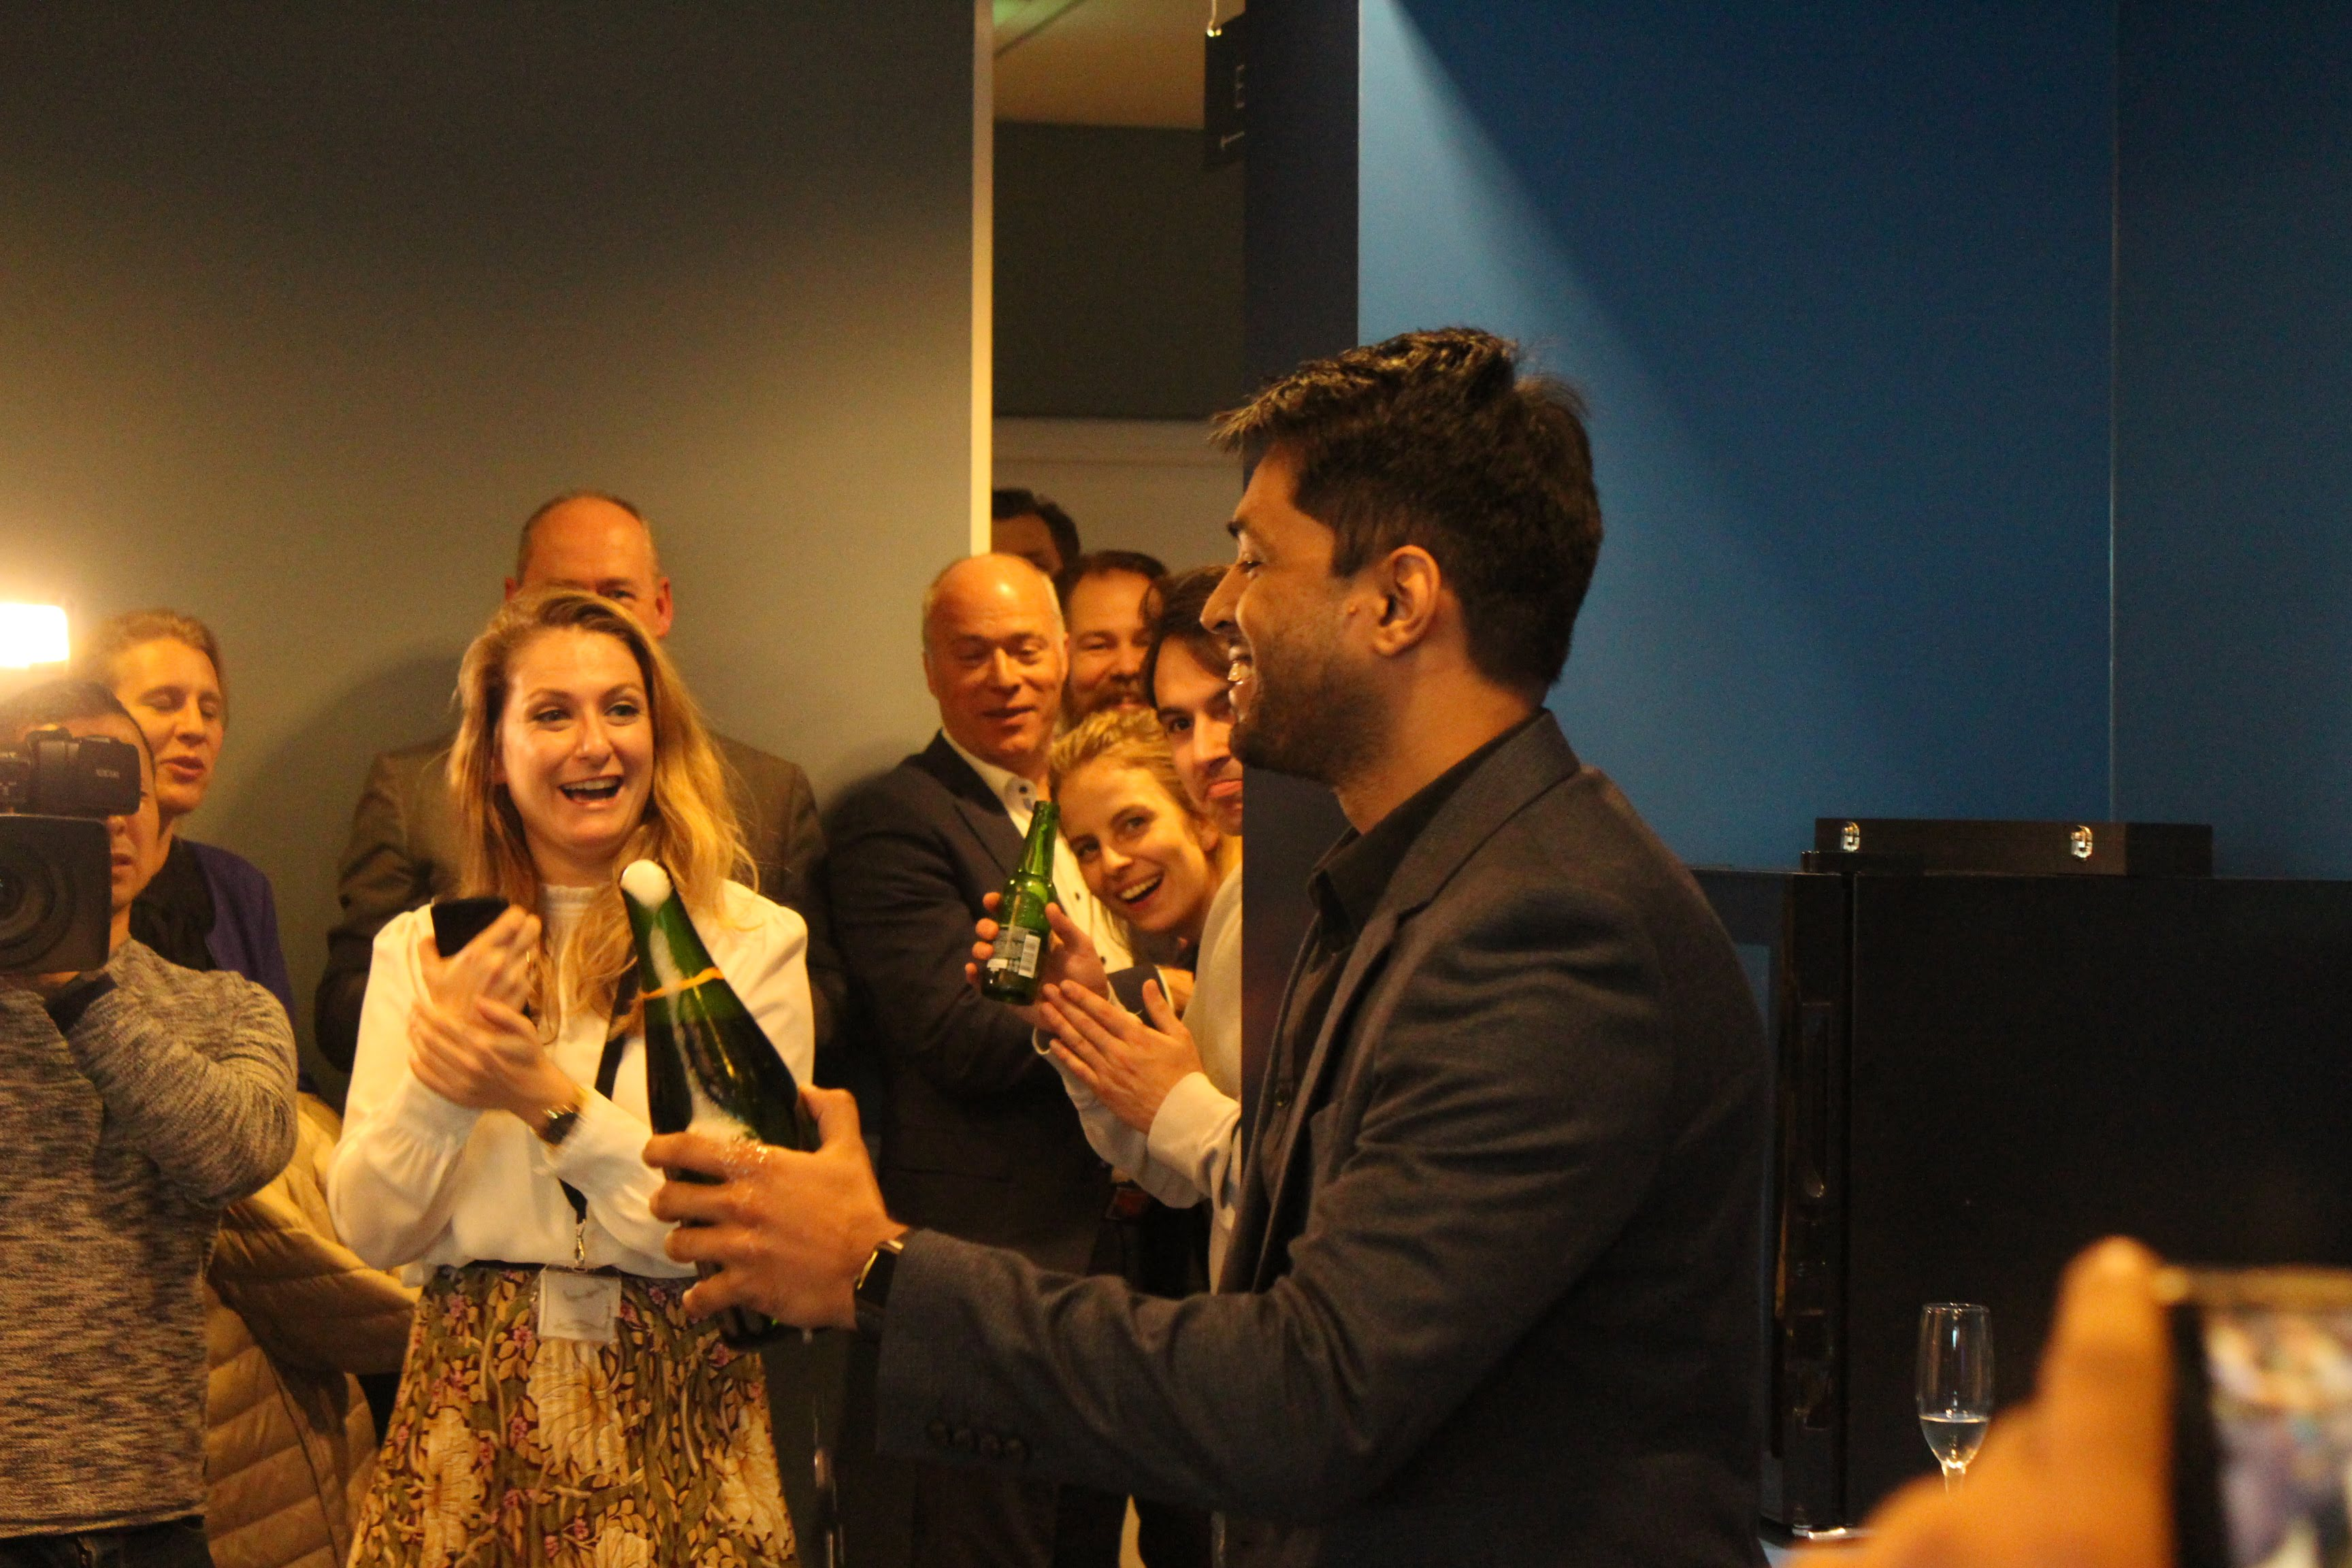 Co-founder Karthik Mahadevan holds the open champagne bottle and smiles.